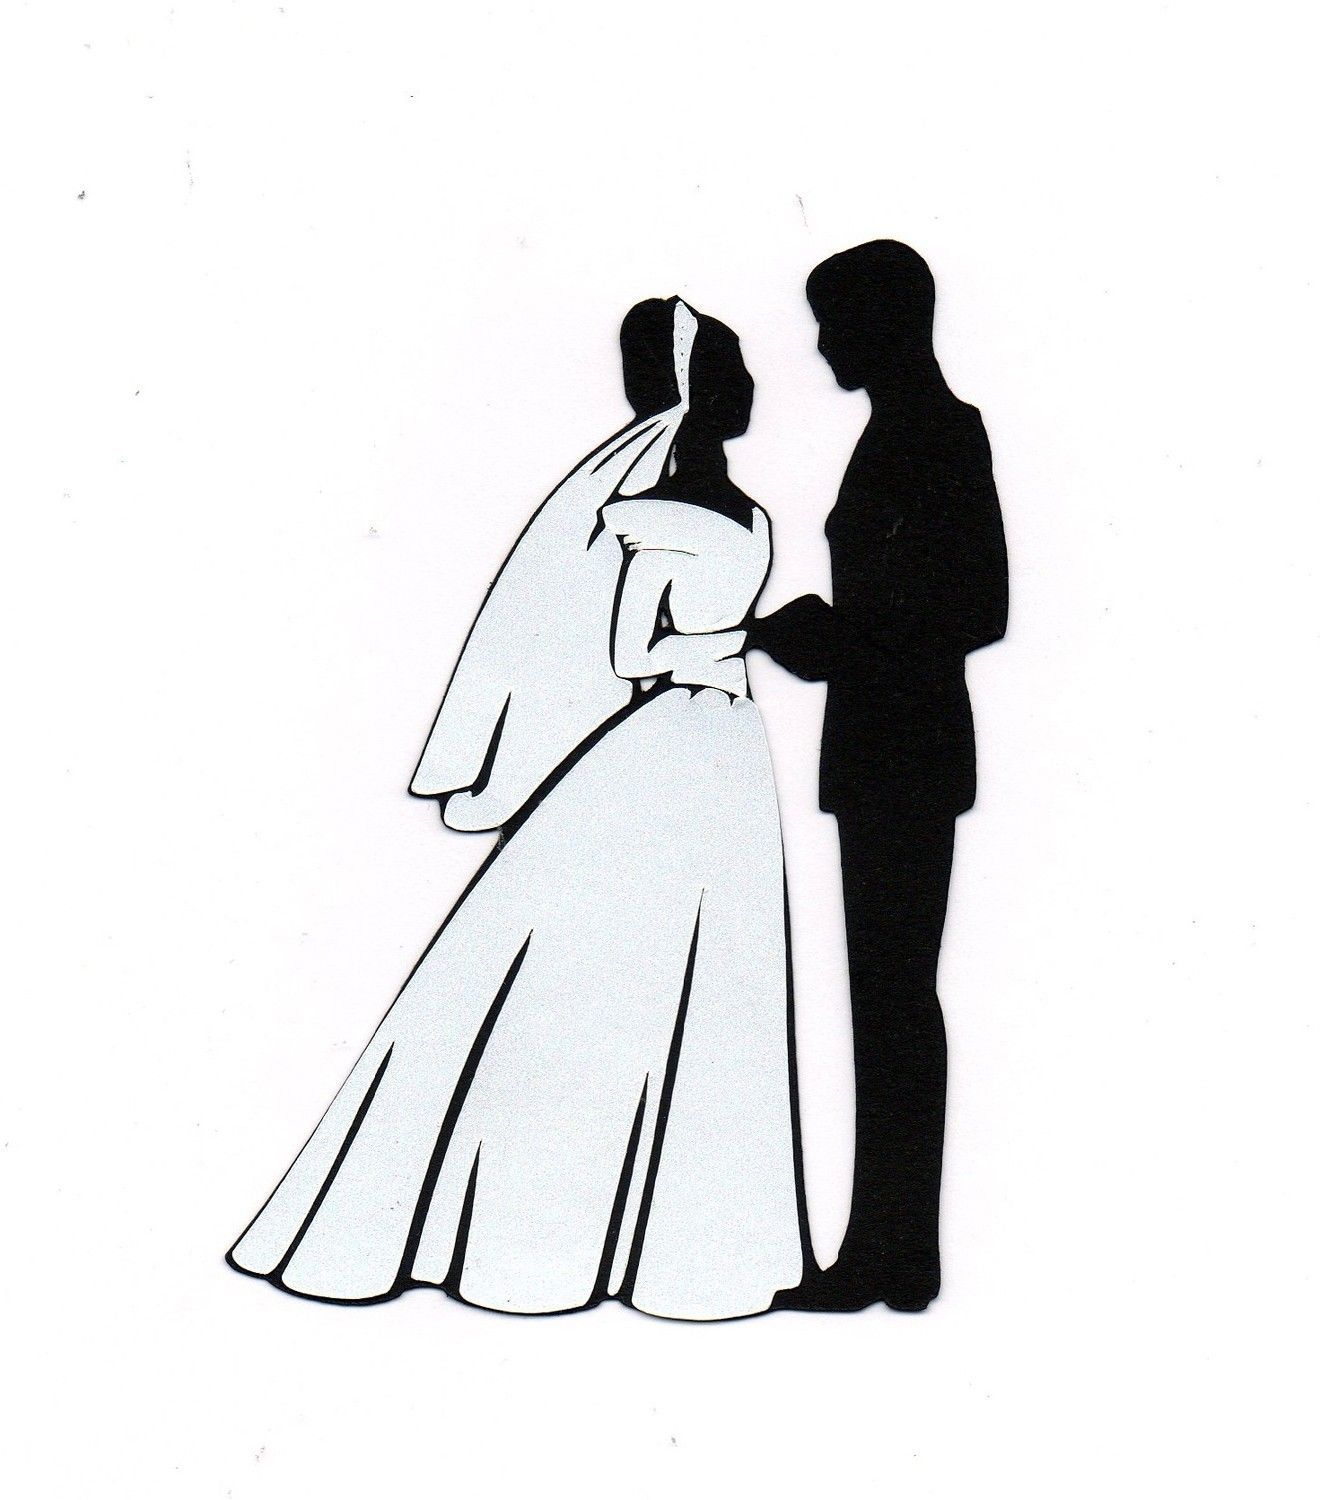 bride and groom silhouette wedding clipart at getdrawings com free rh getdrawings com free clipart bride and groom silhouette clipart bride and groom free